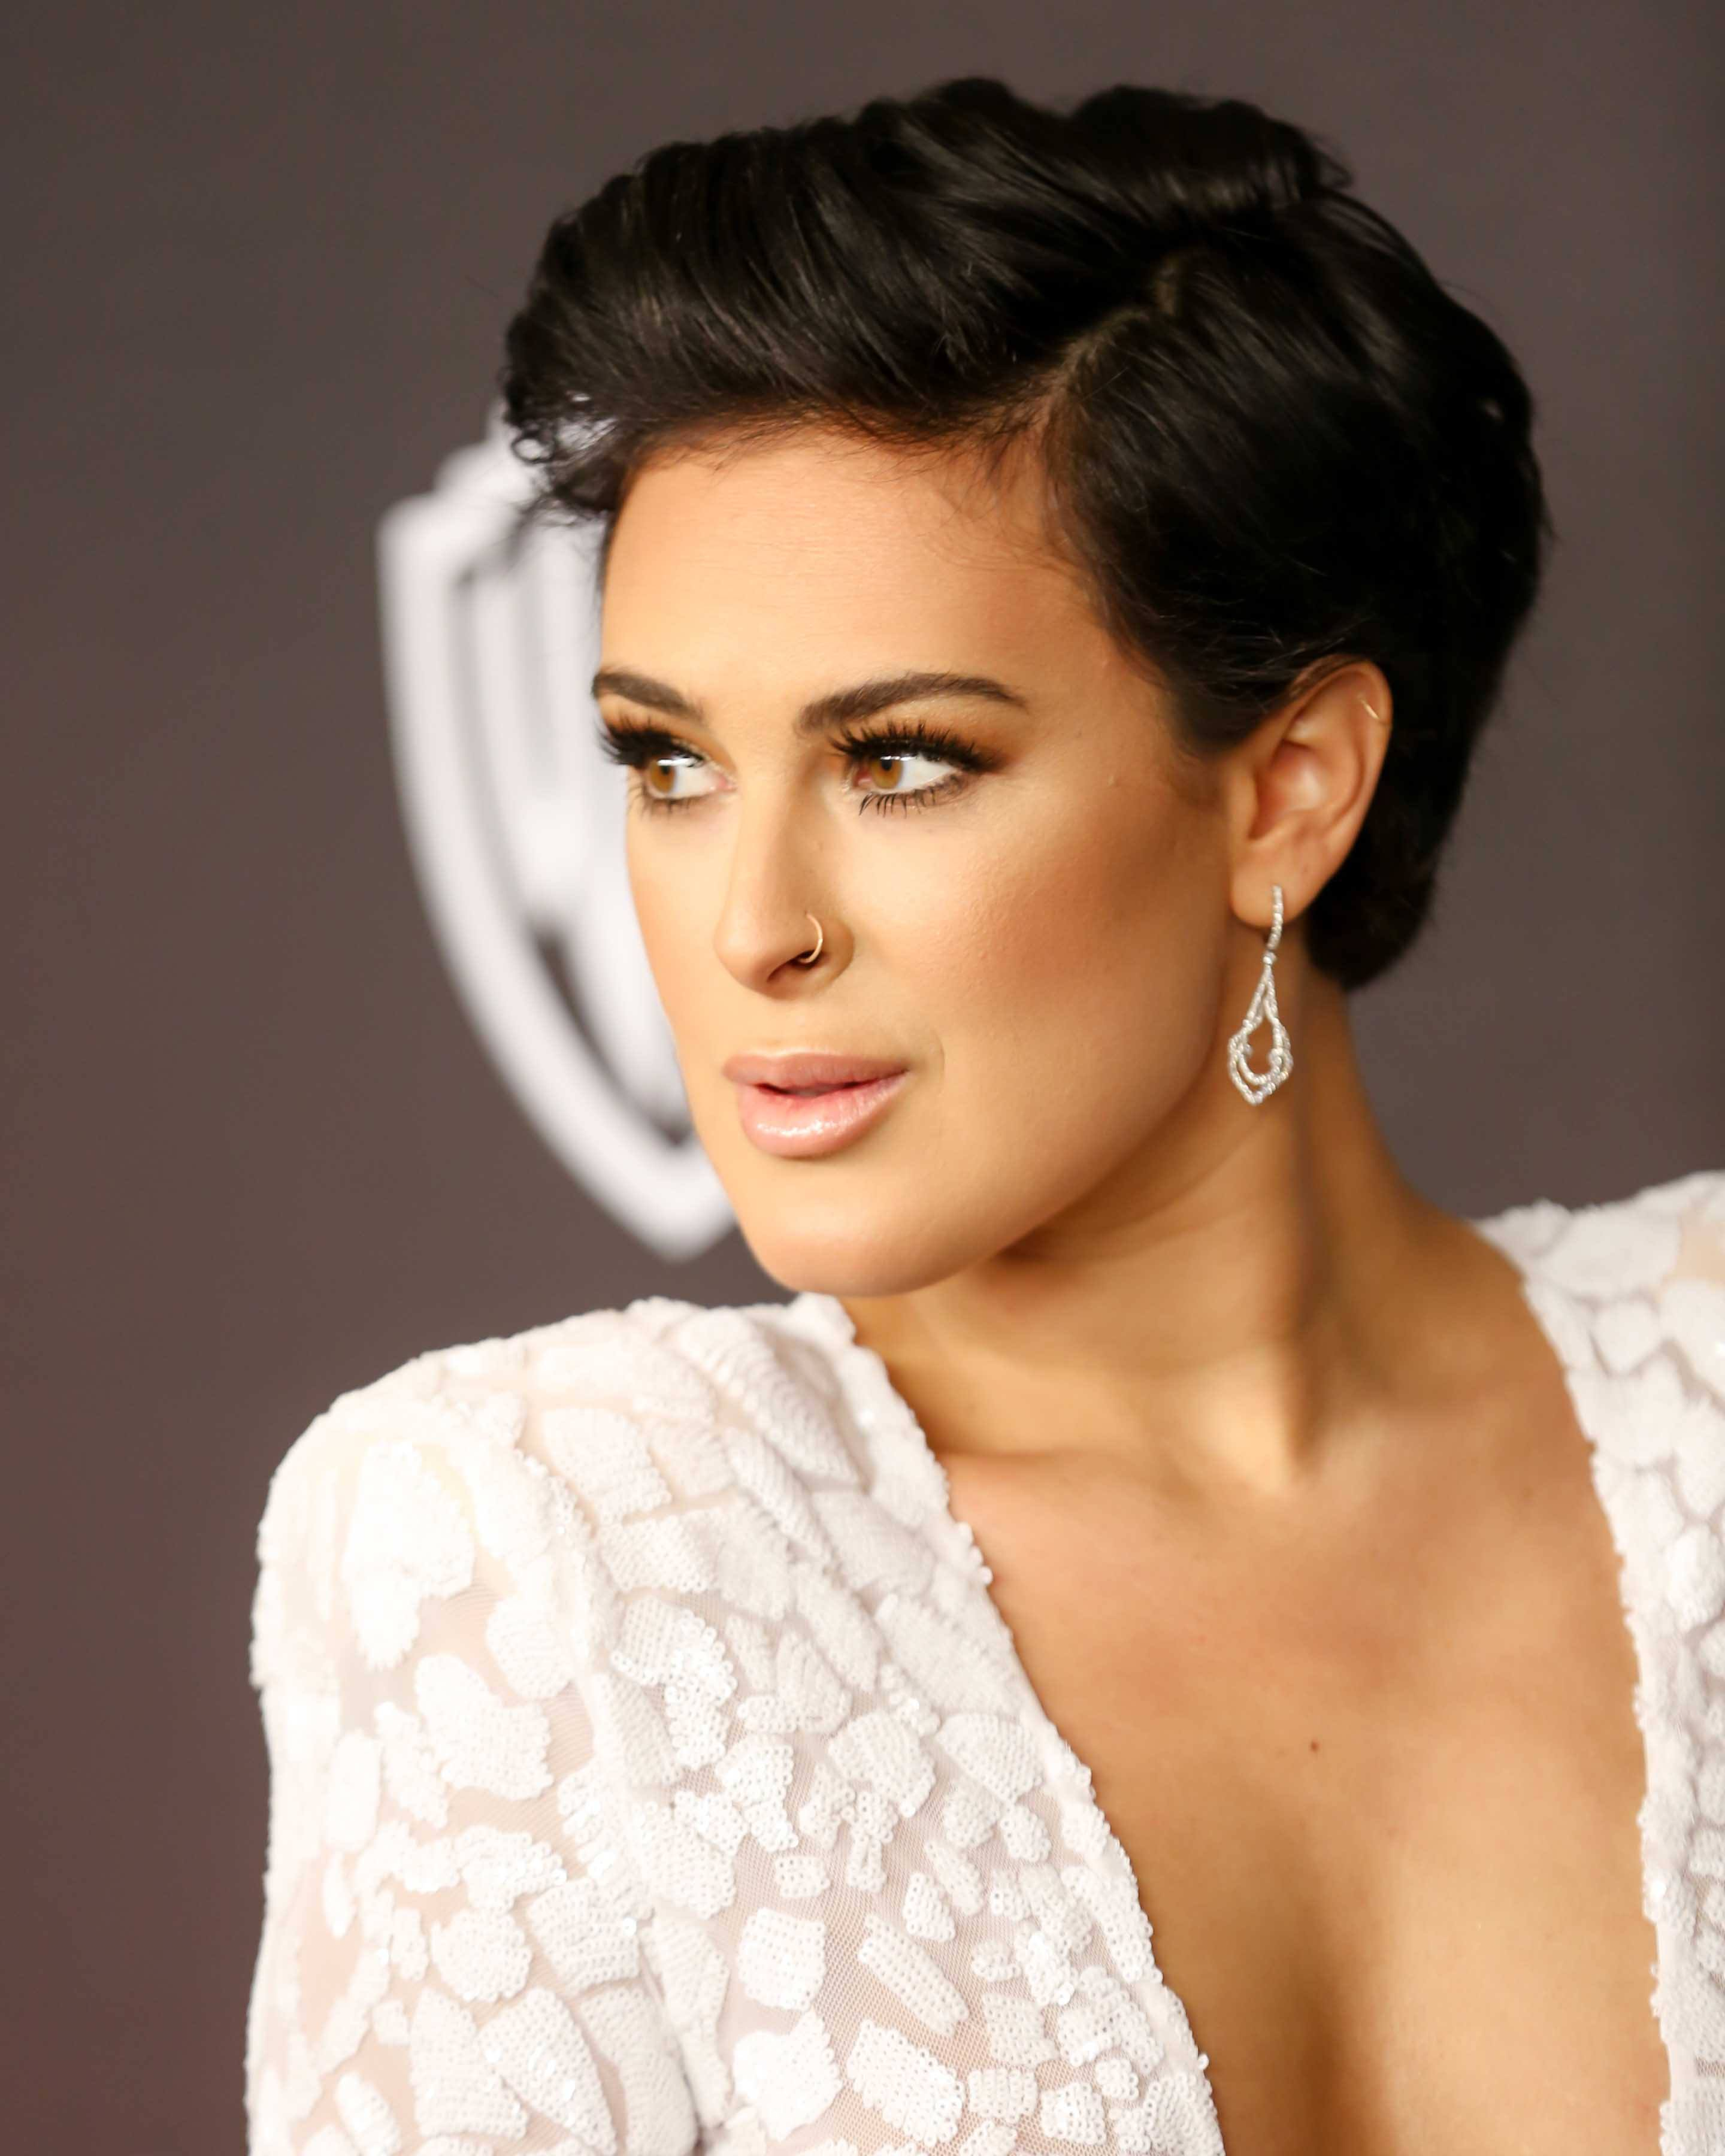 celebrity hair: All Things Hair - IMAGE - 2016 pixie crop brown hair